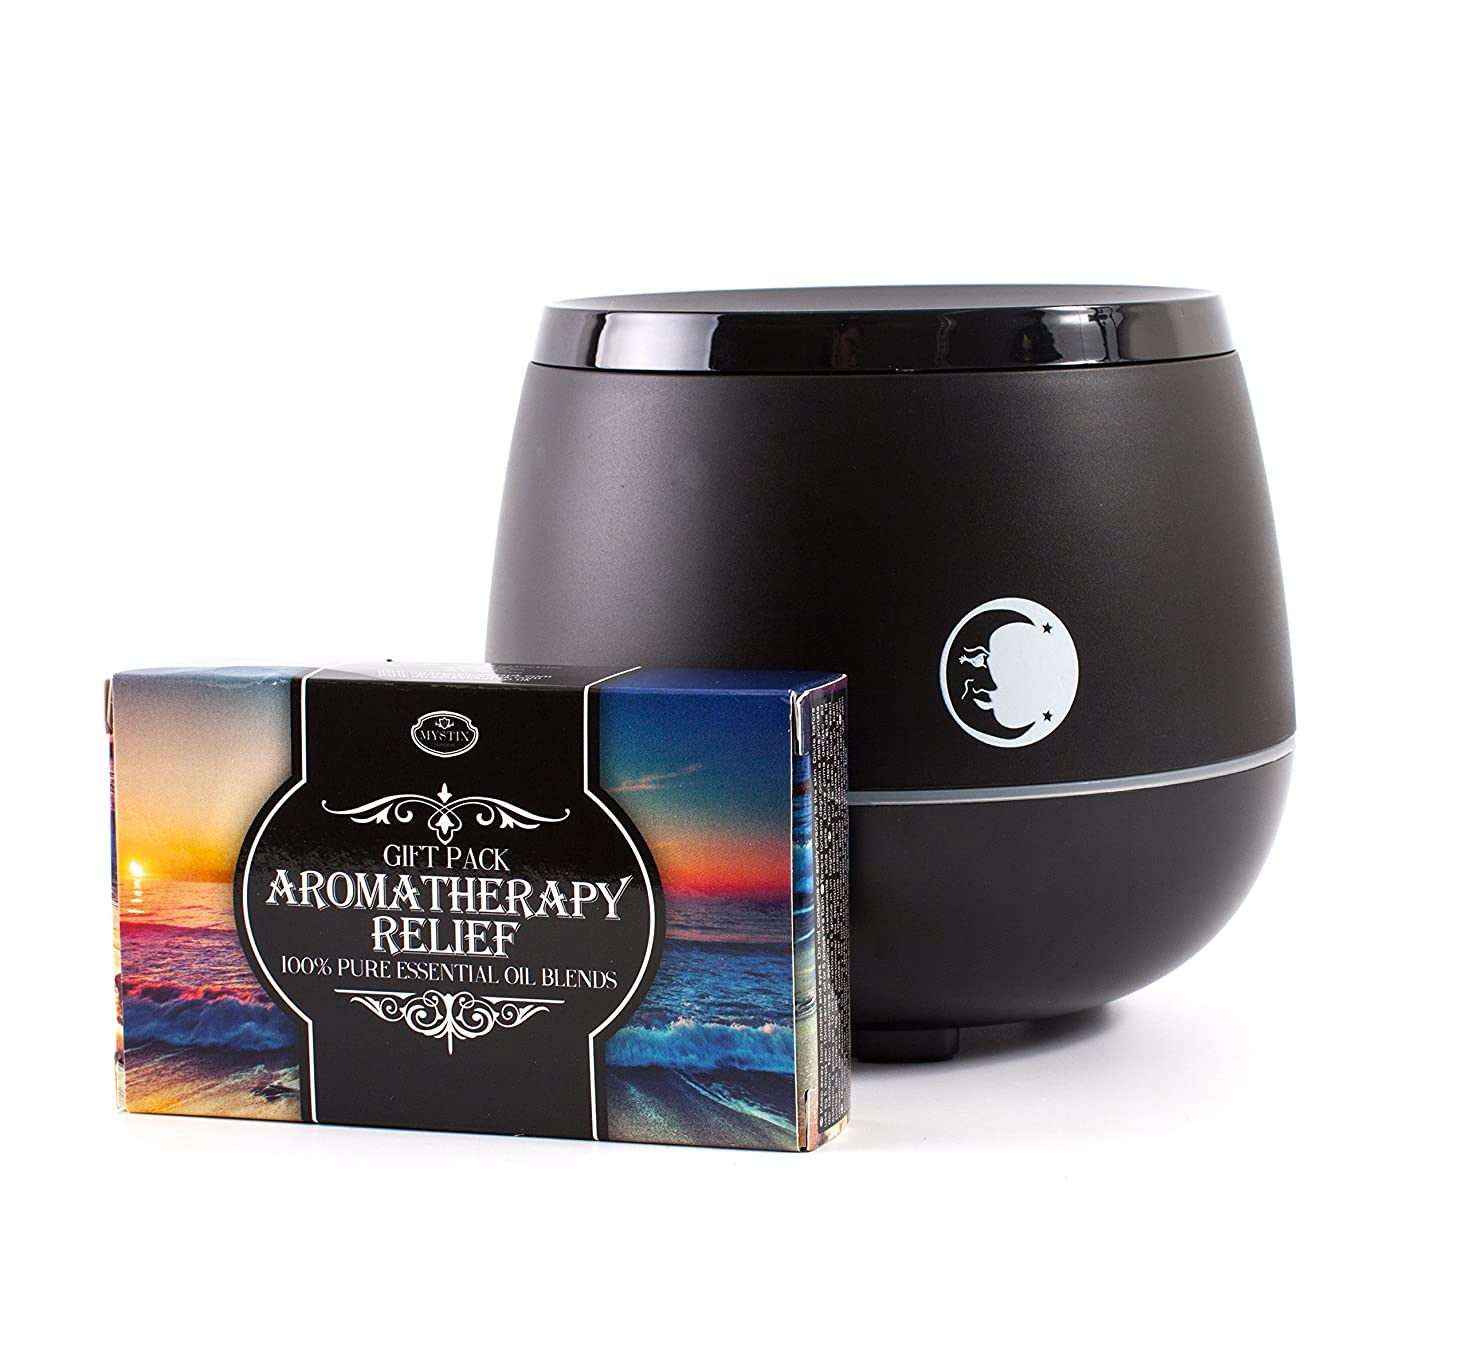 フォアマンクレア豆Mystic Moments | Black Aromatherapy Oil Ultrasonic Diffuser With Bluetooth Speaker & LED Lights + Aromatherapy Relief Essential Oil Blend Gift Pack